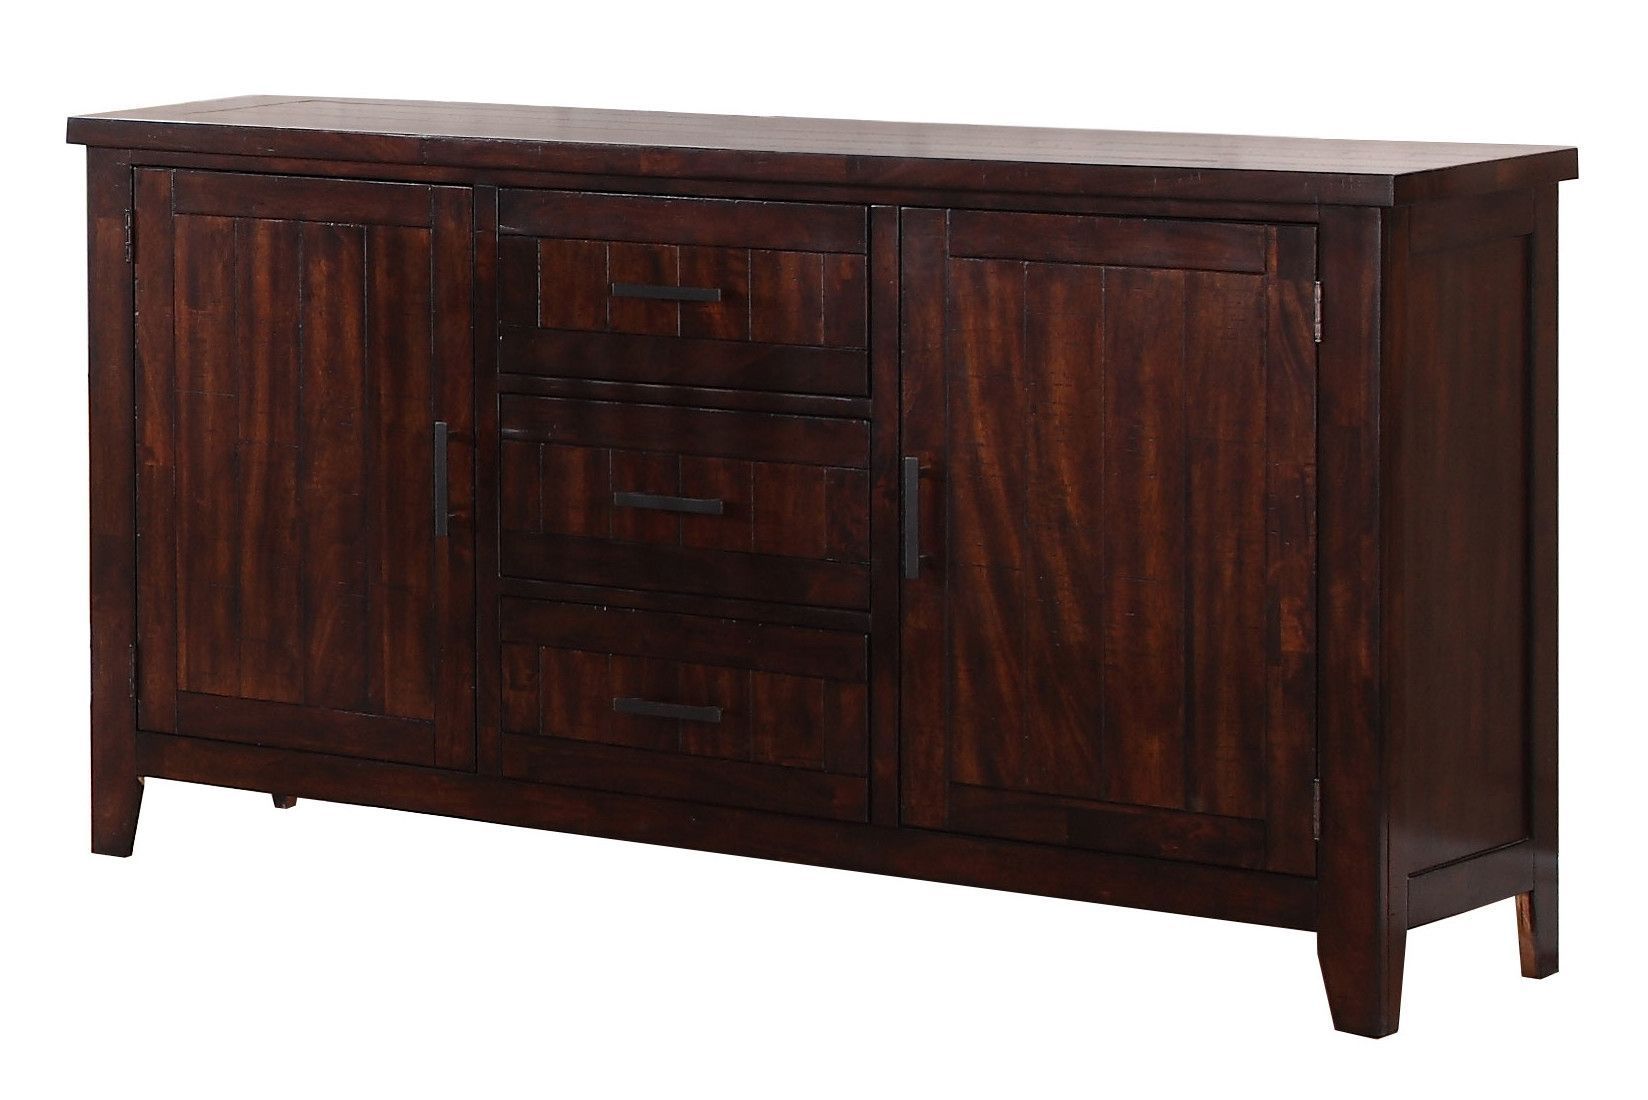 Mannox Sideboard | Products | Sideboard, Dining Room, Furniture Regarding Latest Seiling Sideboards (#10 of 20)